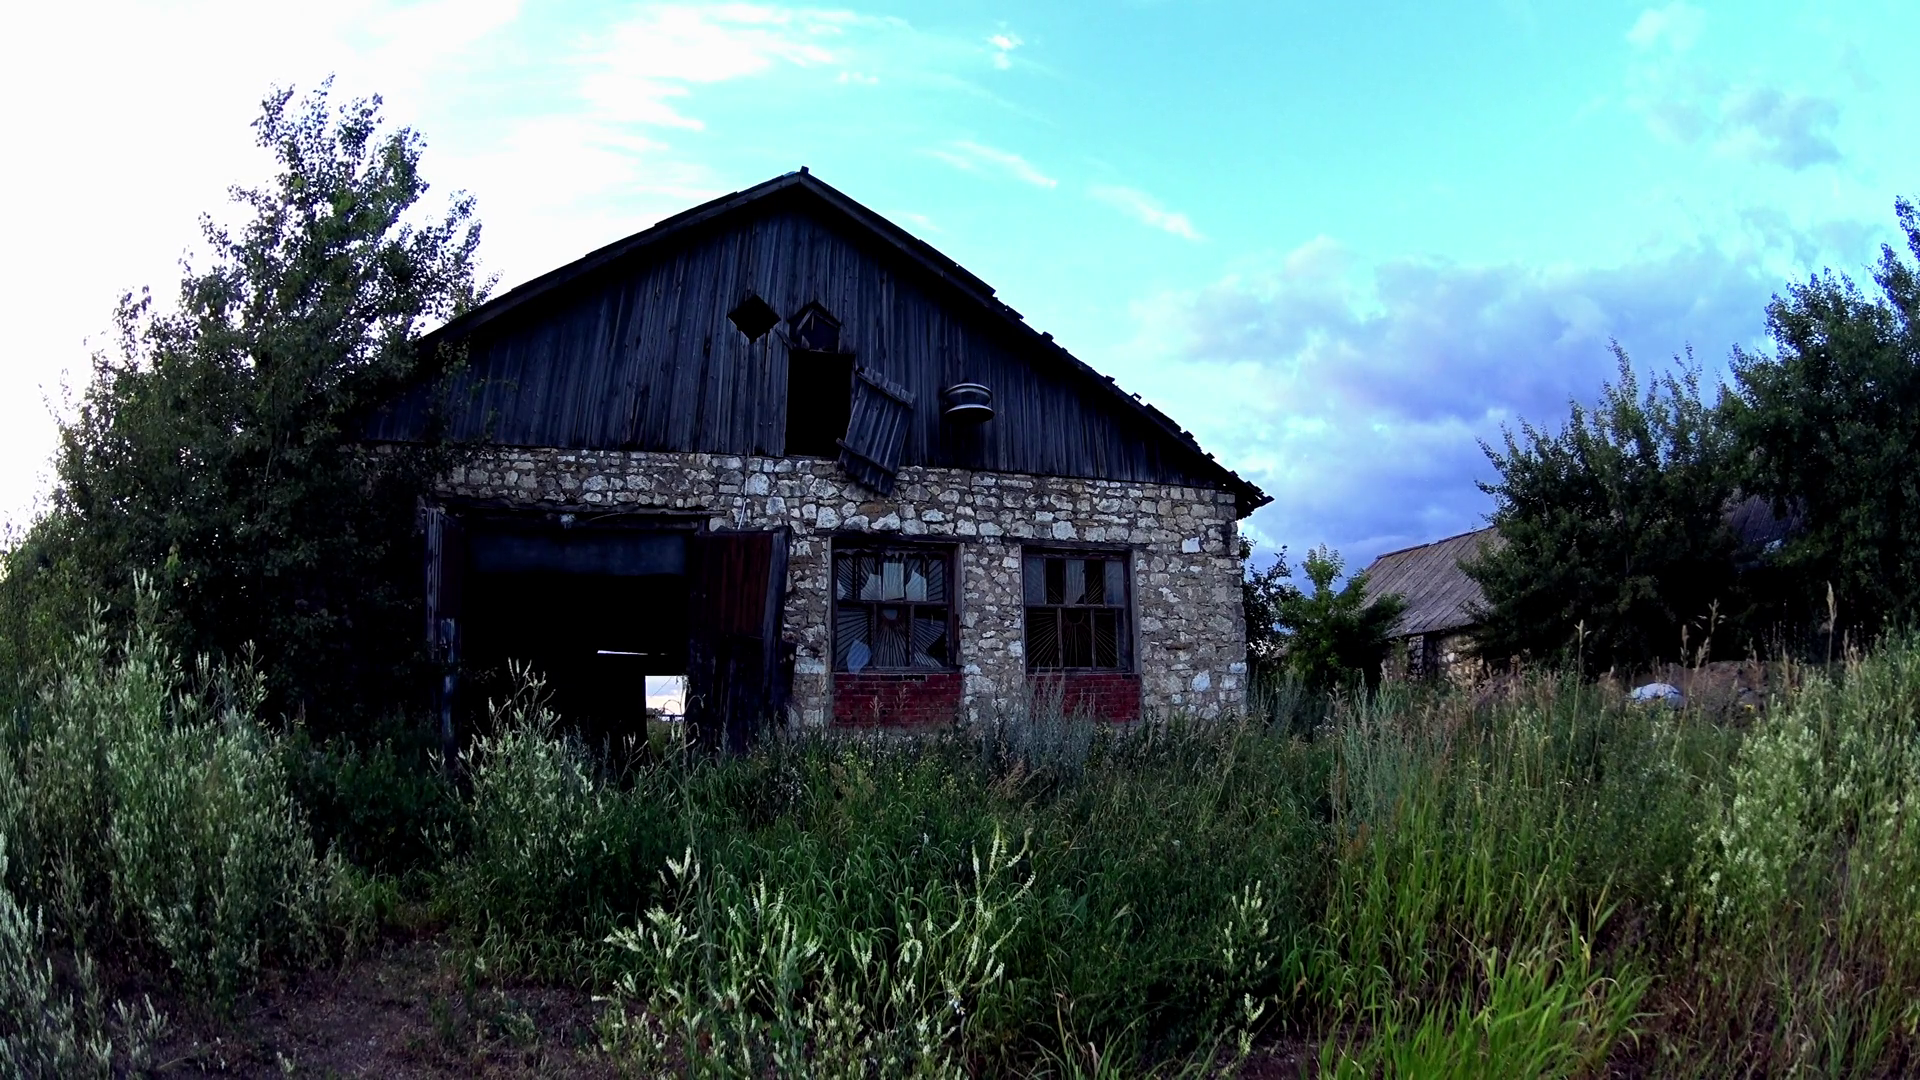 Abandoned house in grassy field Stock Video Footage - VideoBlocks